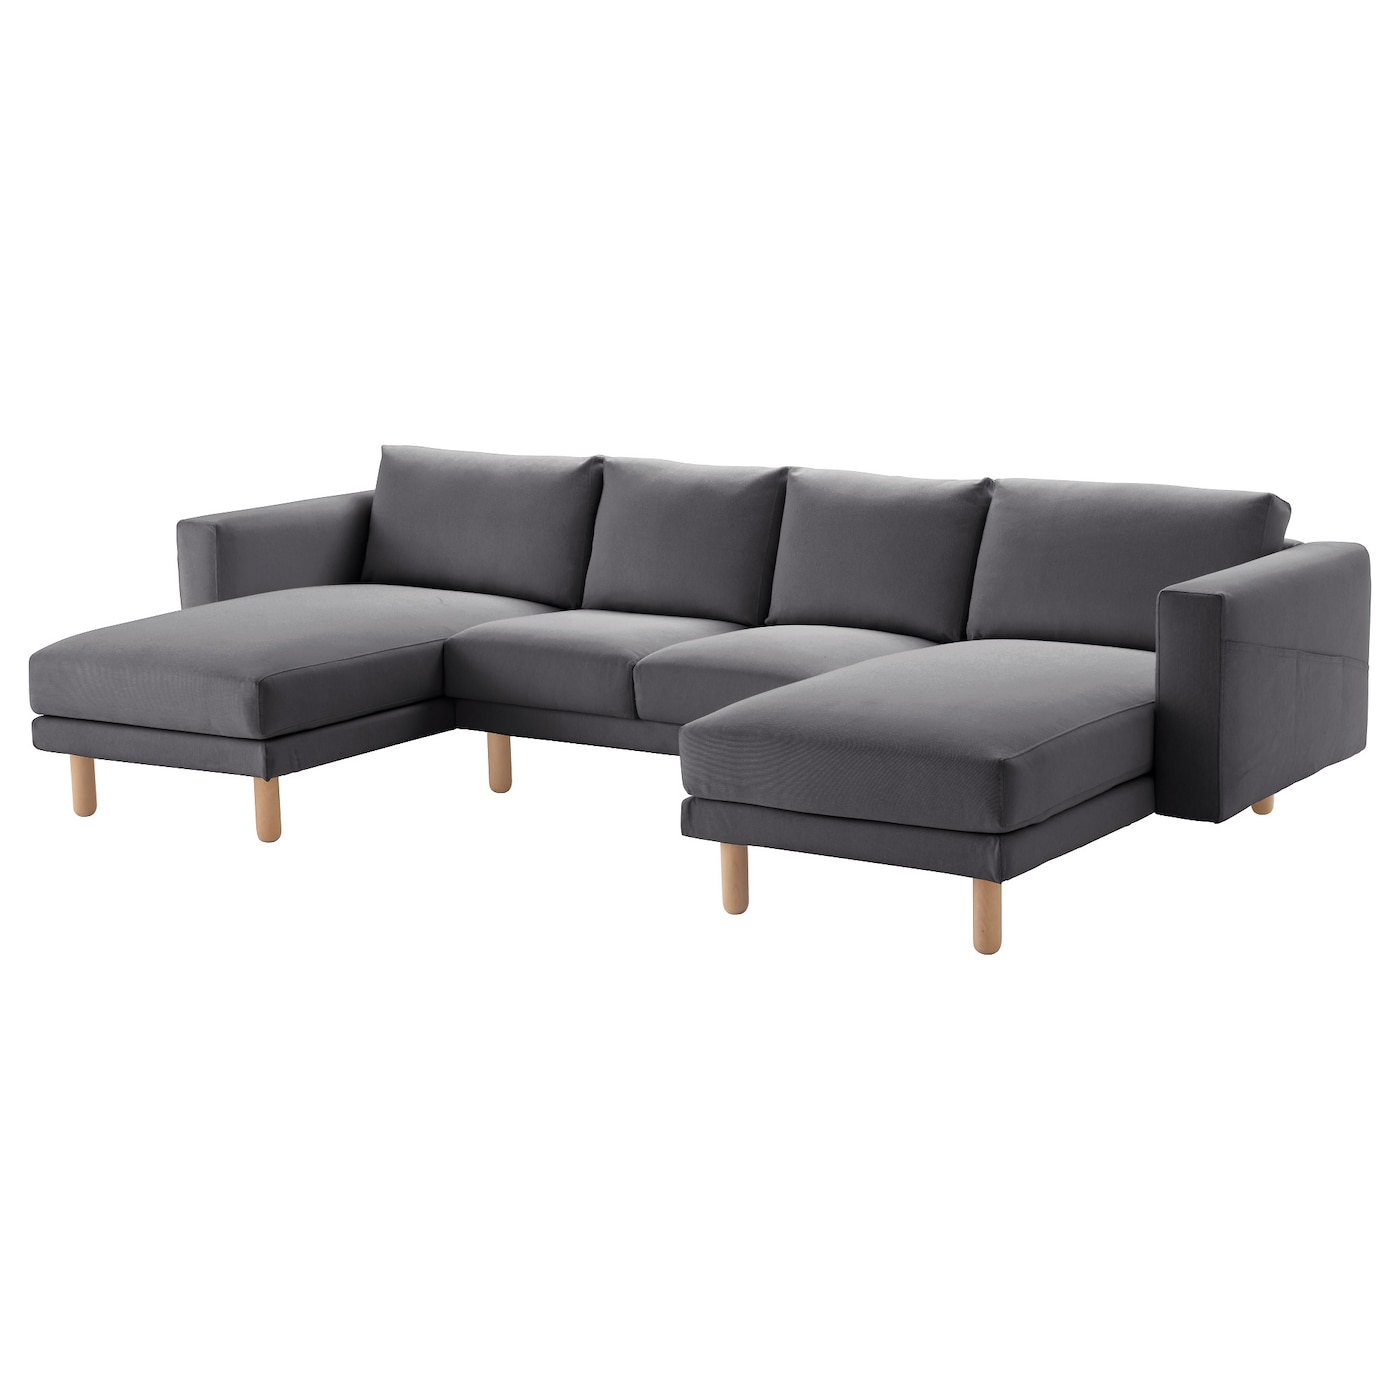 Norsborg 2 seat sofa with 2 chaise longues finnsta dark for 2 5 seater sofa with chaise